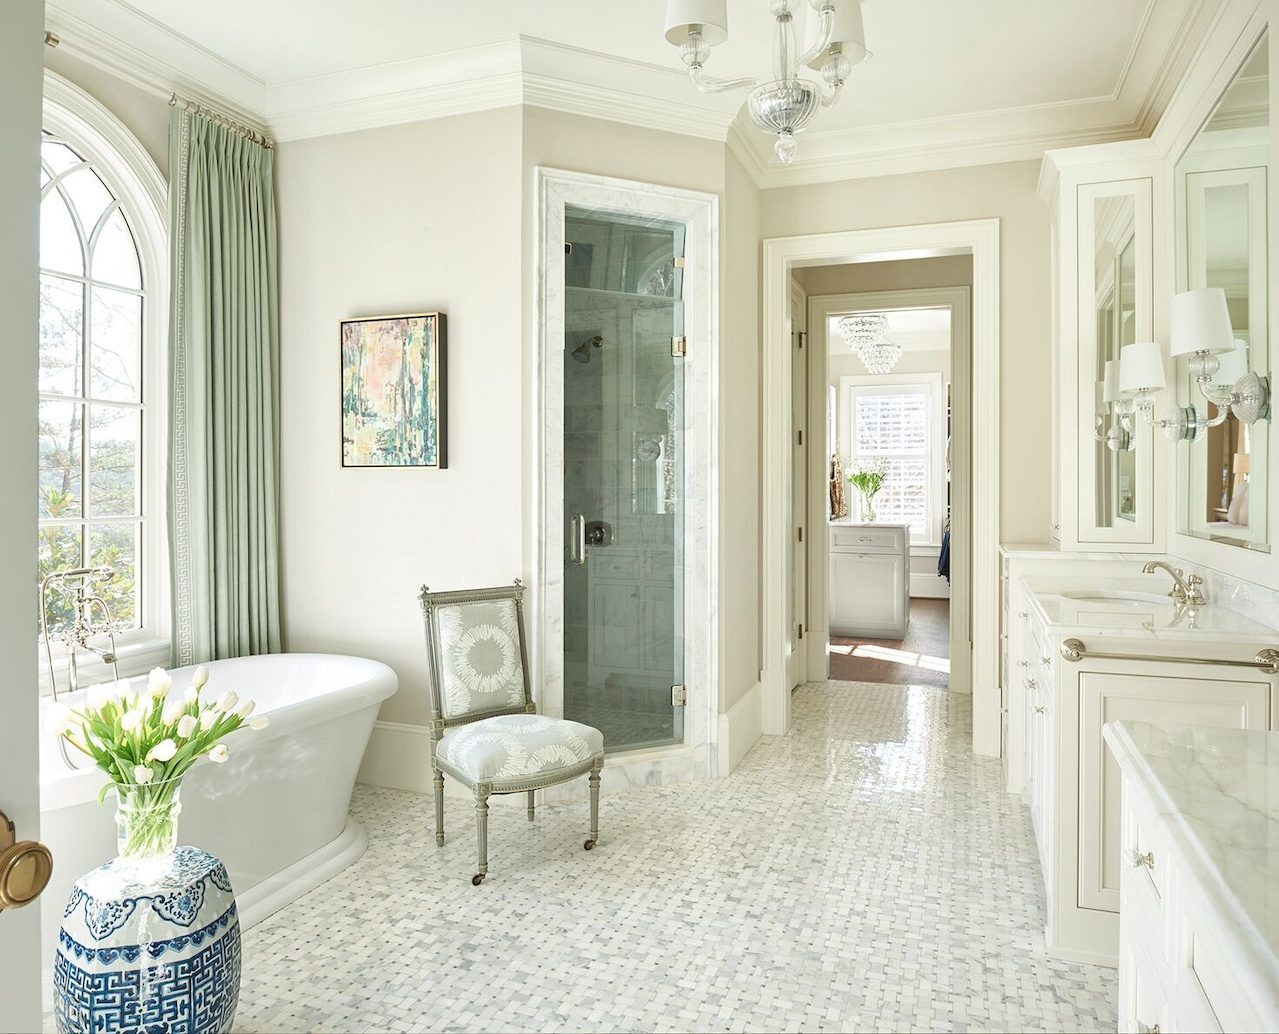 Luxurious window treatments—made from Duralee fabrics—soften the free-standing tub. Soft shades of green elevate the bathroom from a typical all-white scenario.